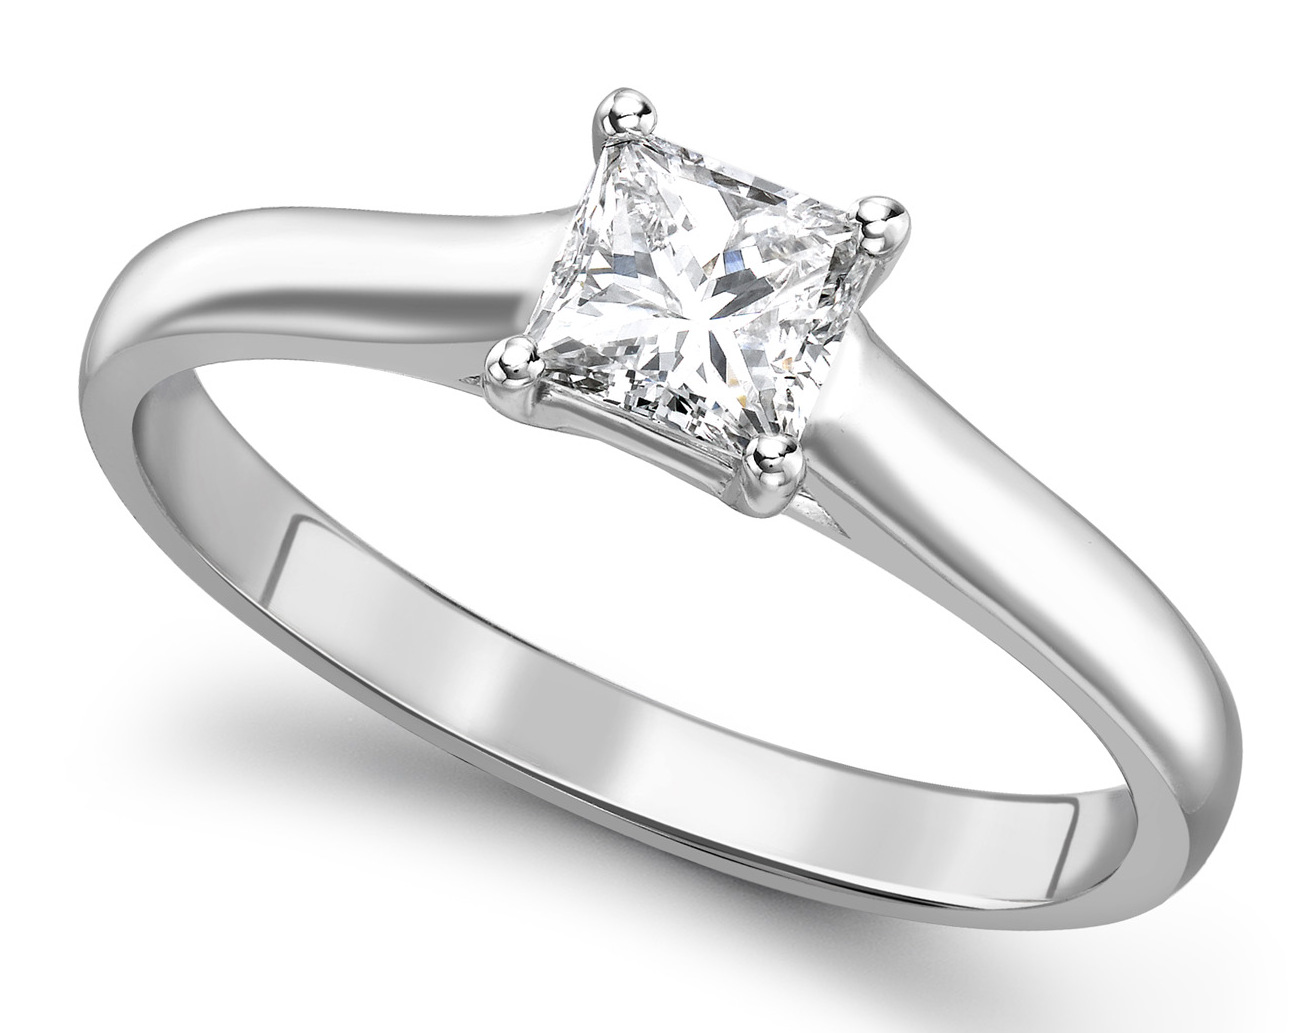 Princess Cut Four Claw White Gold Engagement Ring GRC759 Main Image